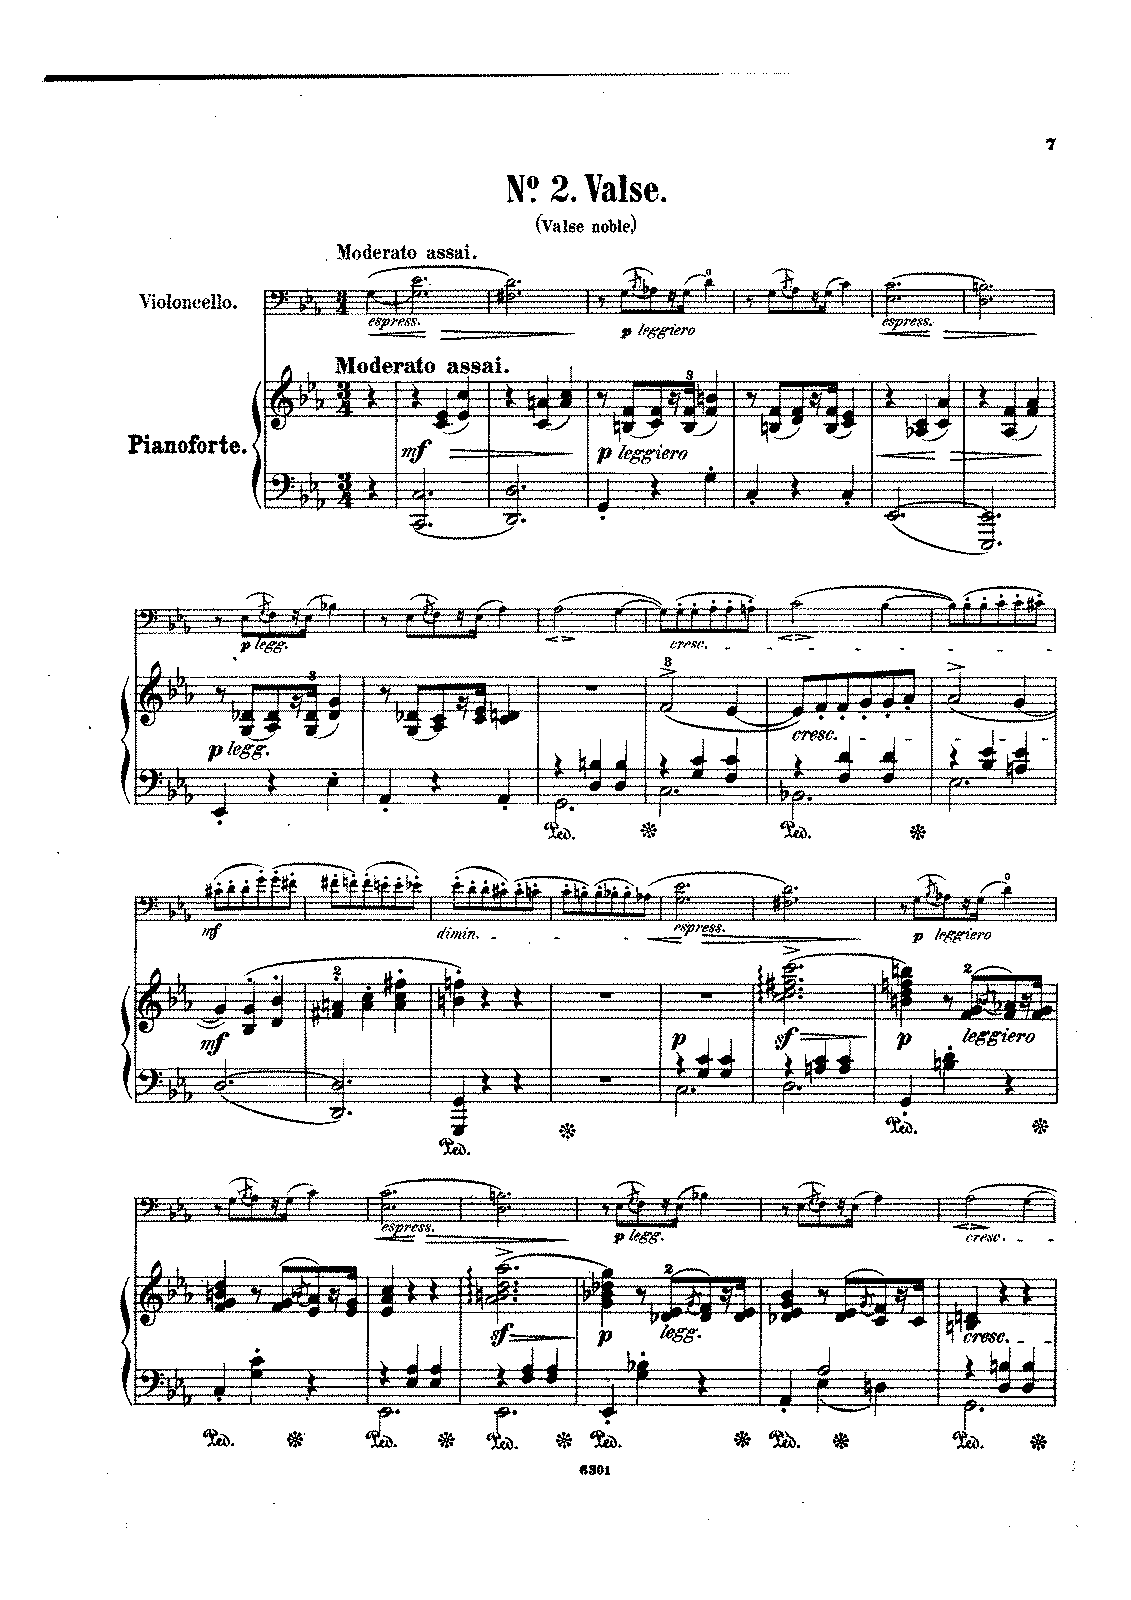 PMLP02373-Chopin - 2a Valse (Noble) Op64 No2 for Cello and Piano (Grutzmacher) score.pdf